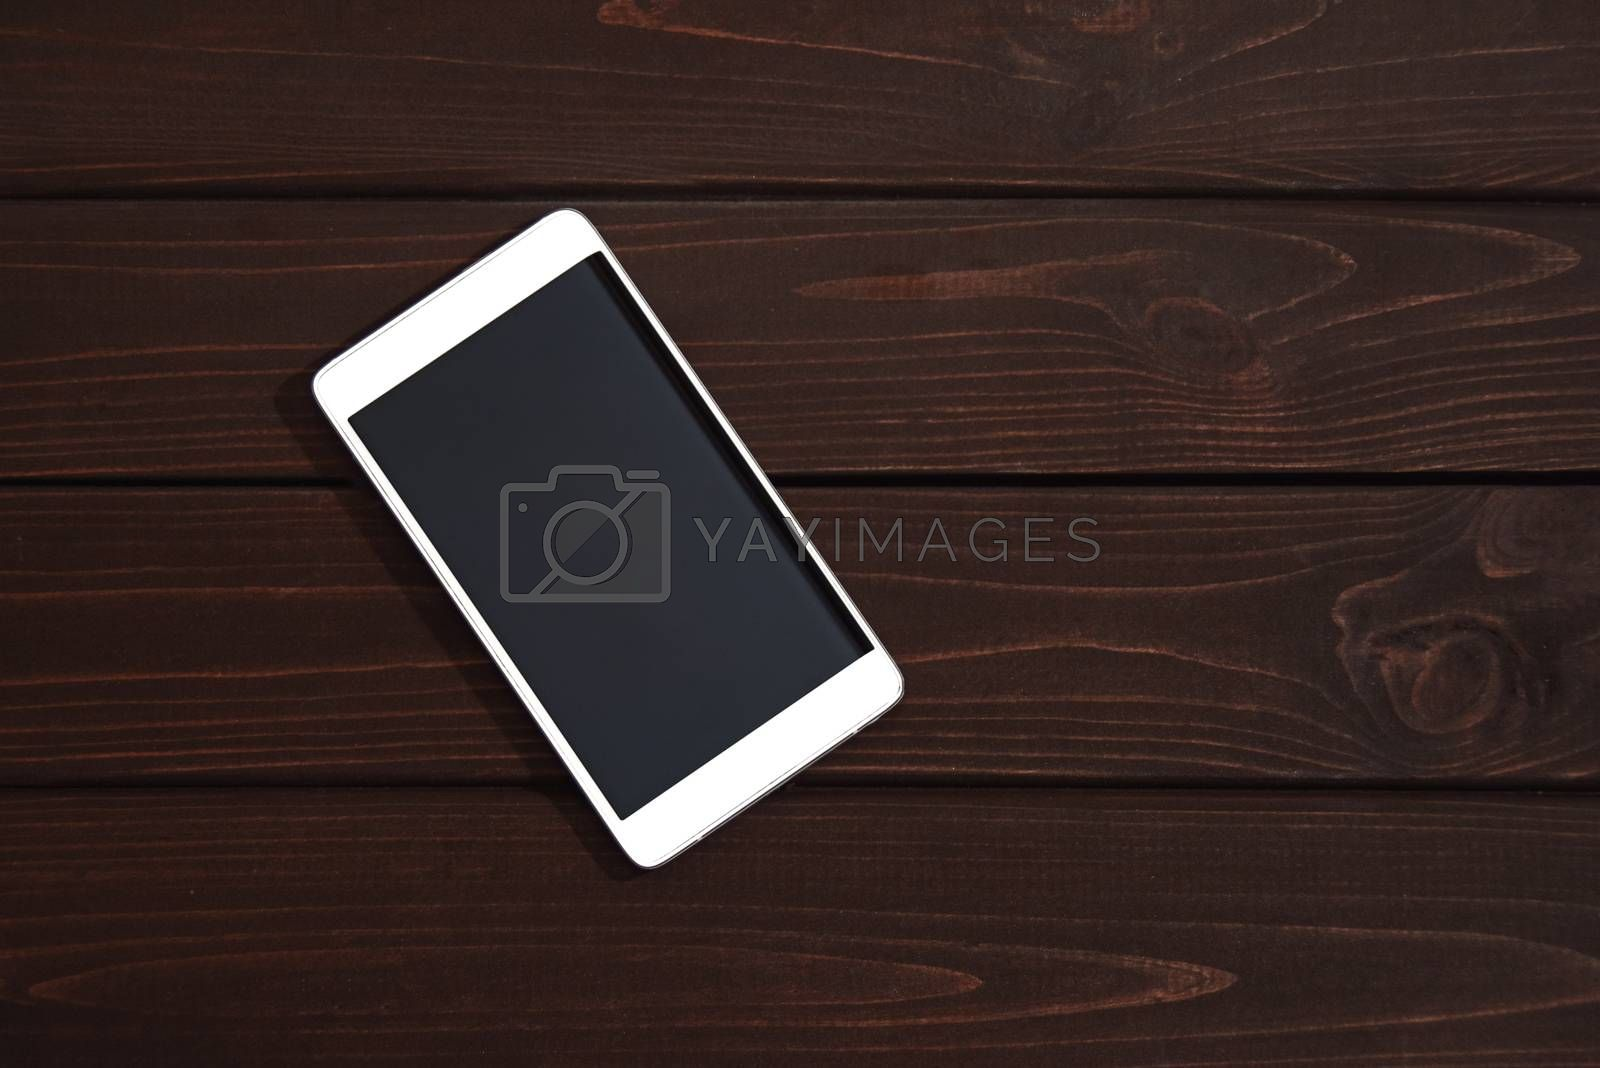 Mobile phone on wooden table background. Smartphone on wood old plank vintage texture background. top view